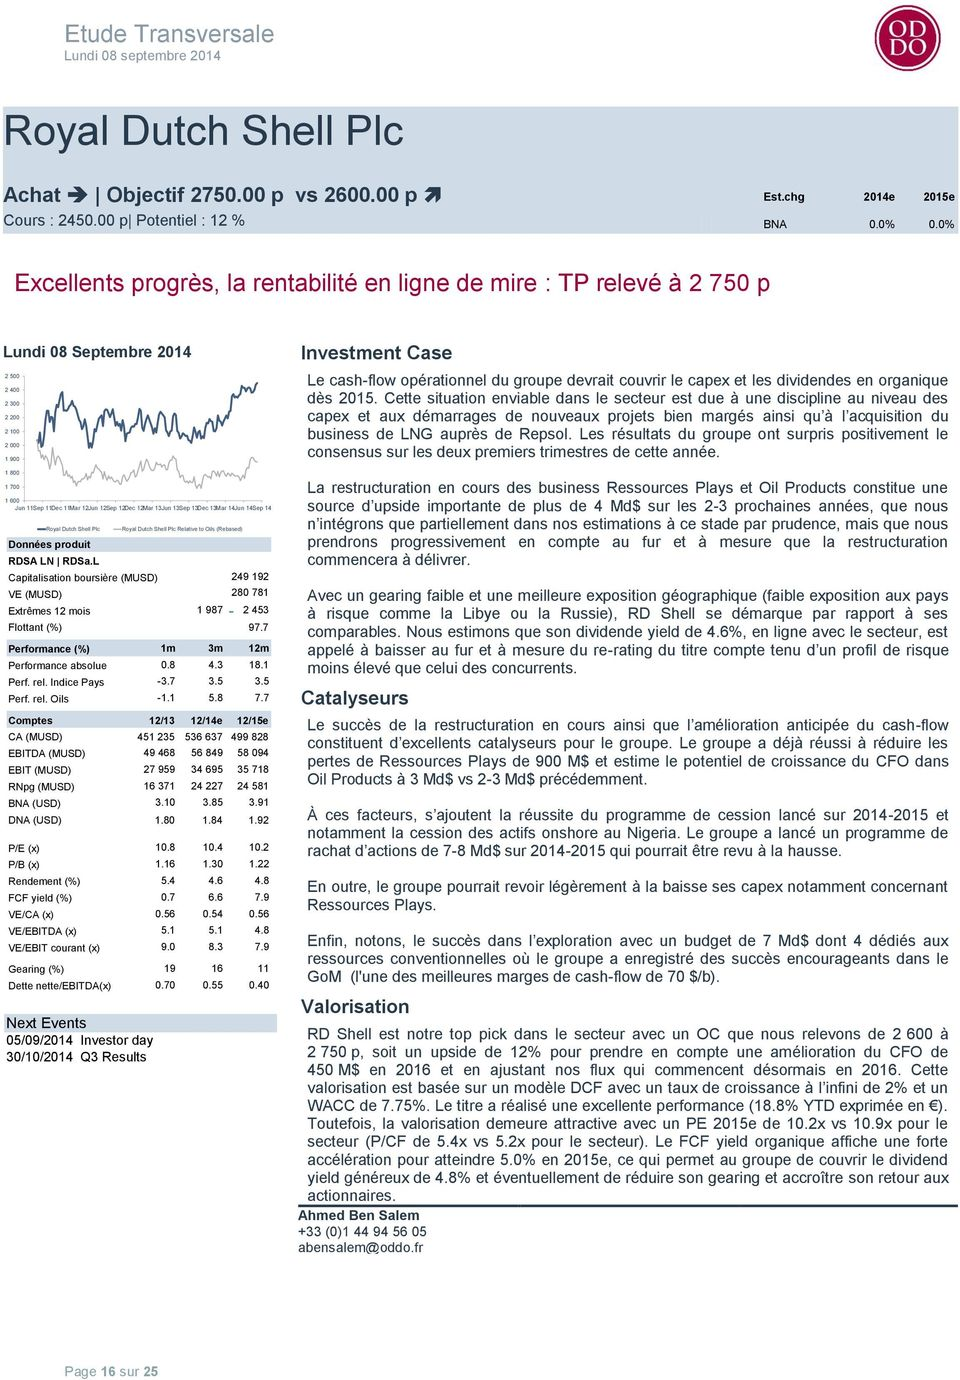 0% progrès, la rentabilité en ligne de mire : TP relevé à 2 750 p 2 500 2 400 2 300 2 200 2 100 2 000 1 900 1 800 1 700 1 600 Jun 11Sep 11Dec 11Mar 12Jun 12Sep 12Dec 12Mar 13Jun 13Sep 13Dec 13Mar